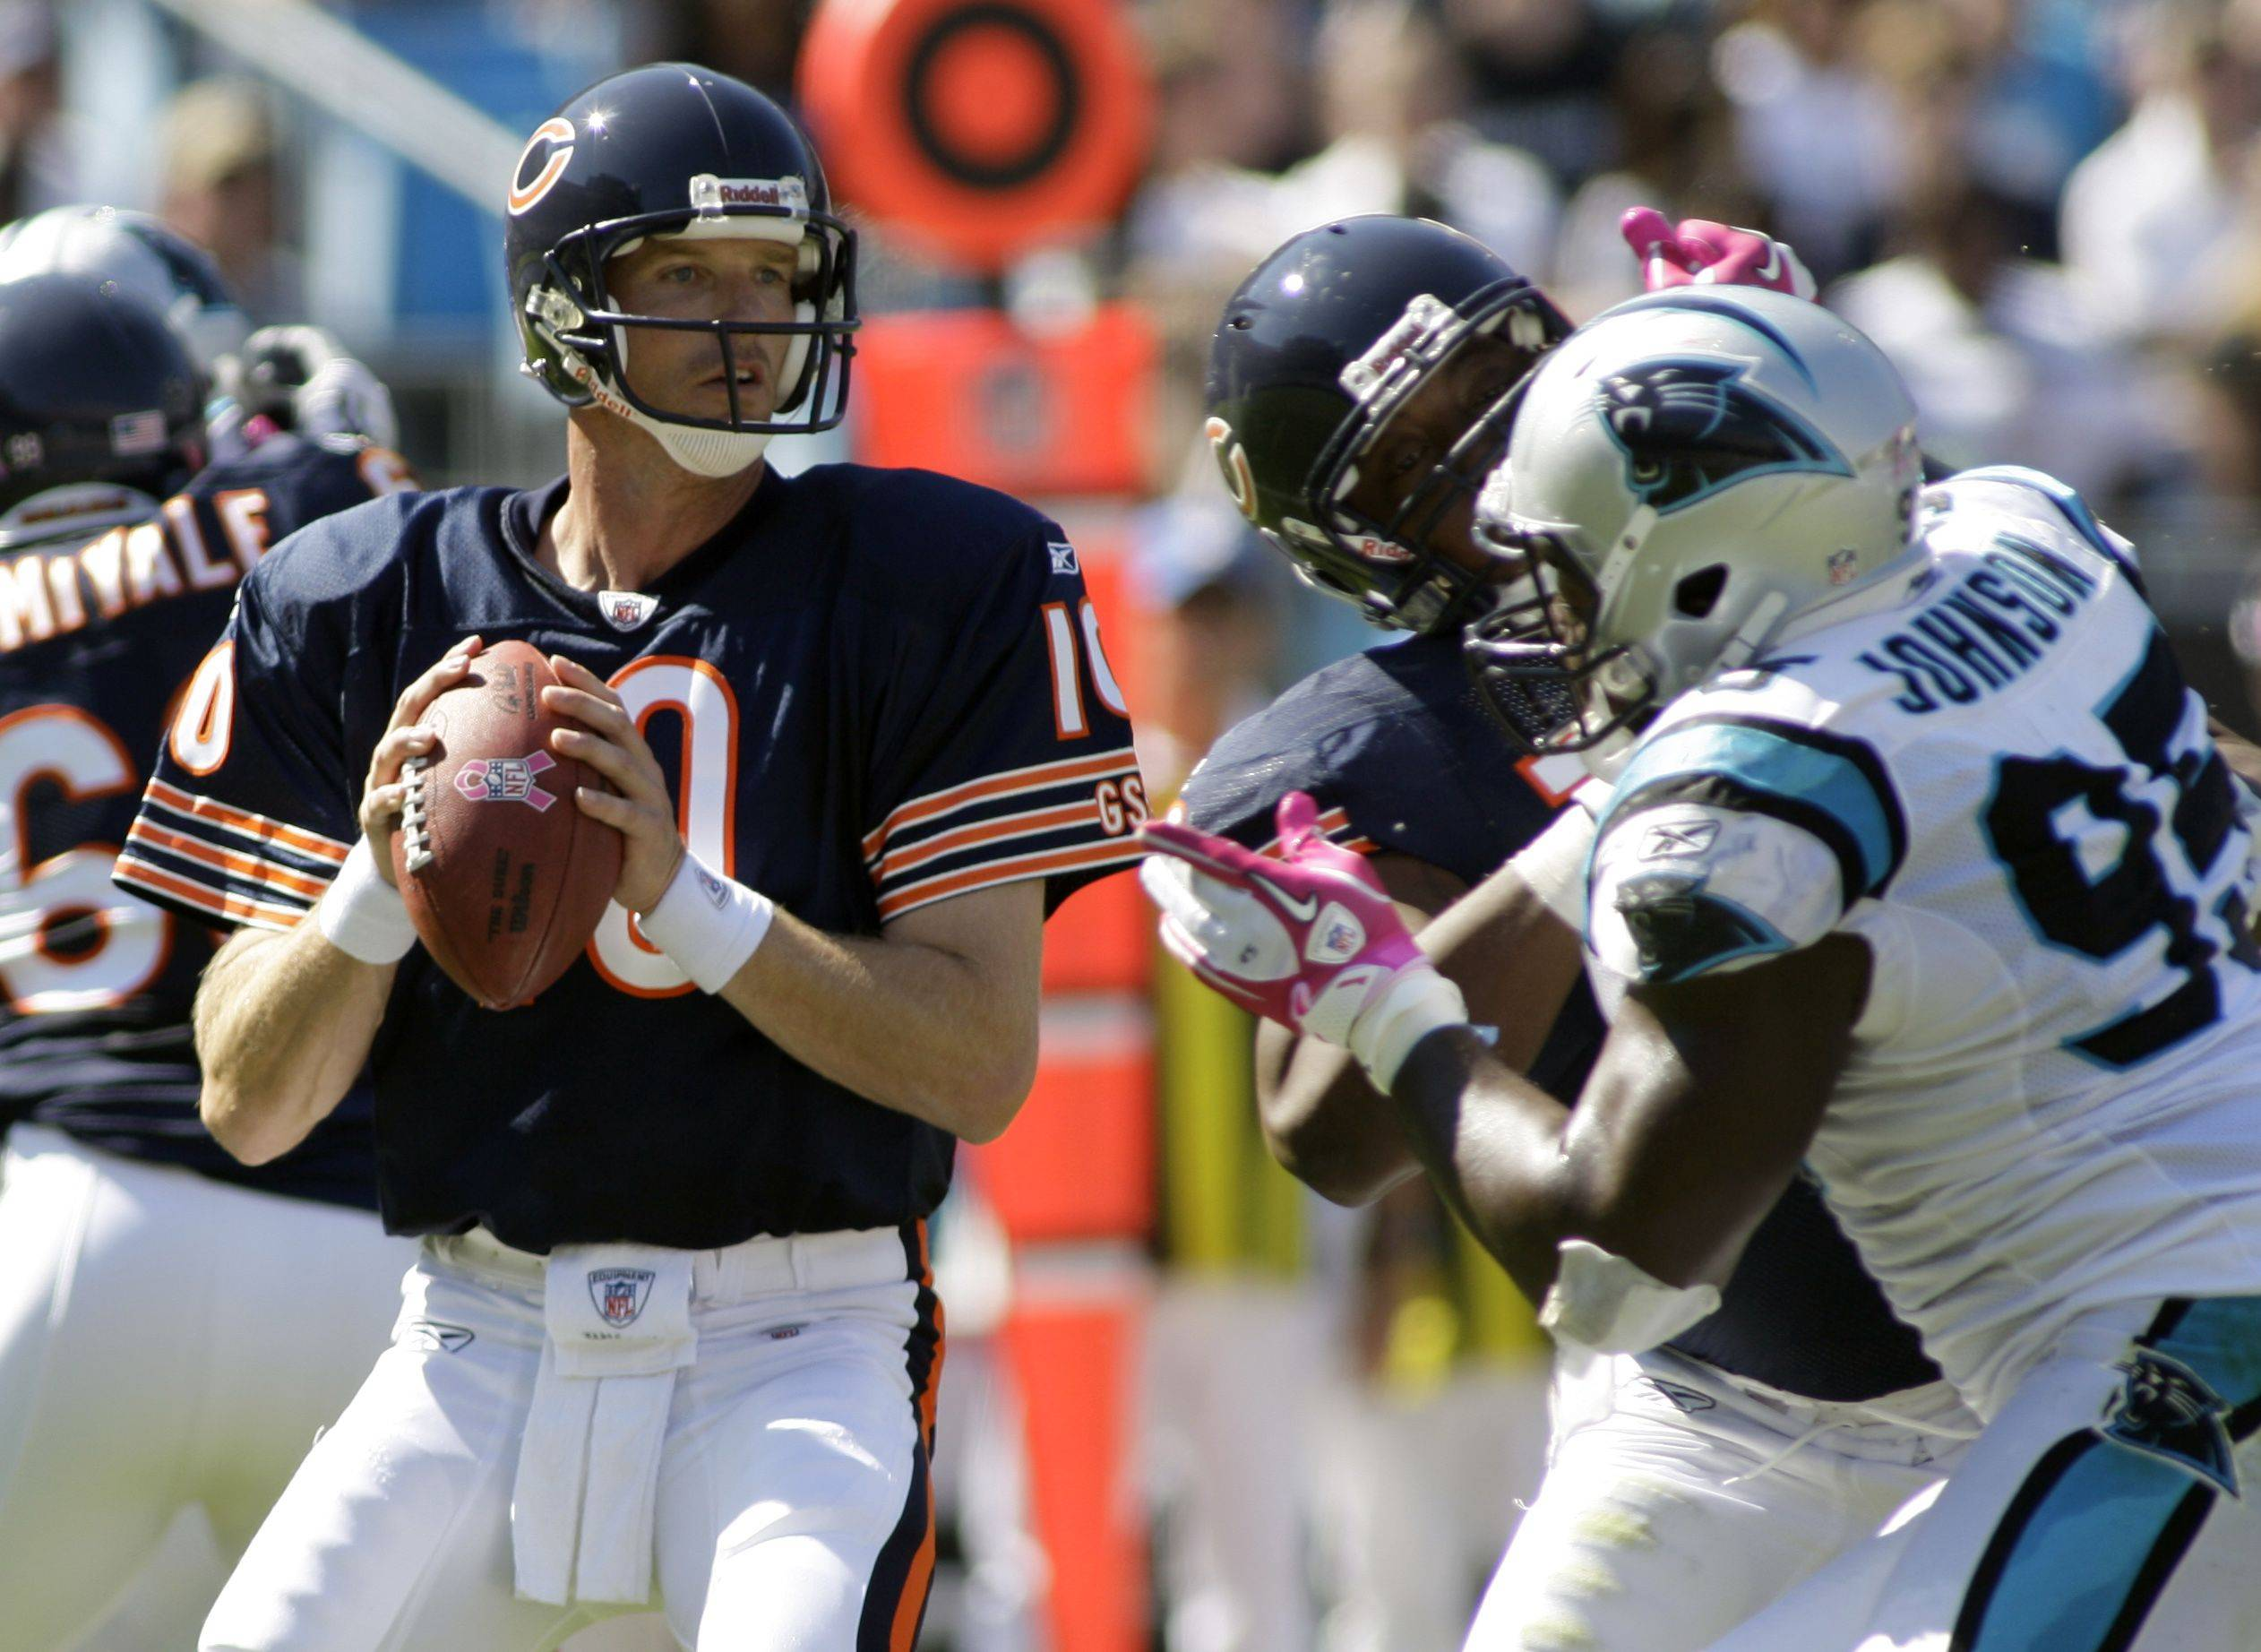 Chicago Bears quarterback Todd Collins (10) looks to pass under pressure from Carolina Panthers' Charles Johnson (95) in the first half of the Bears' 23-6 win in an NFL football game in Charlotte, N.C., Sunday.